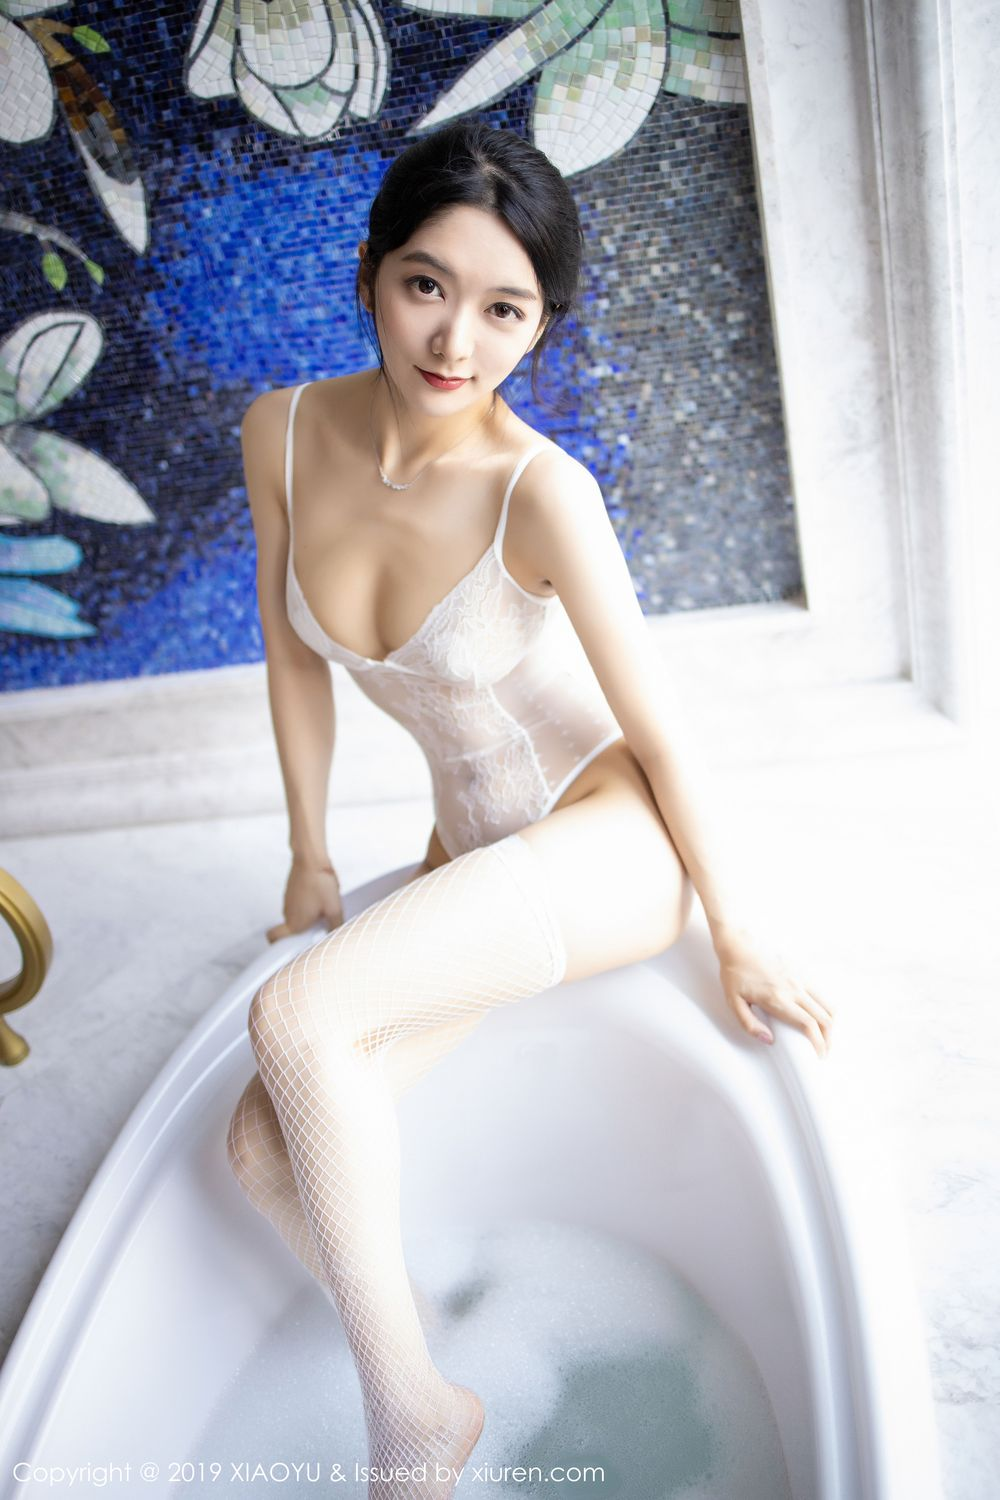 [XiaoYu] Vol.223 Xiao Re Ba 10P, Di Yi, Tall, Wet, XiaoYu